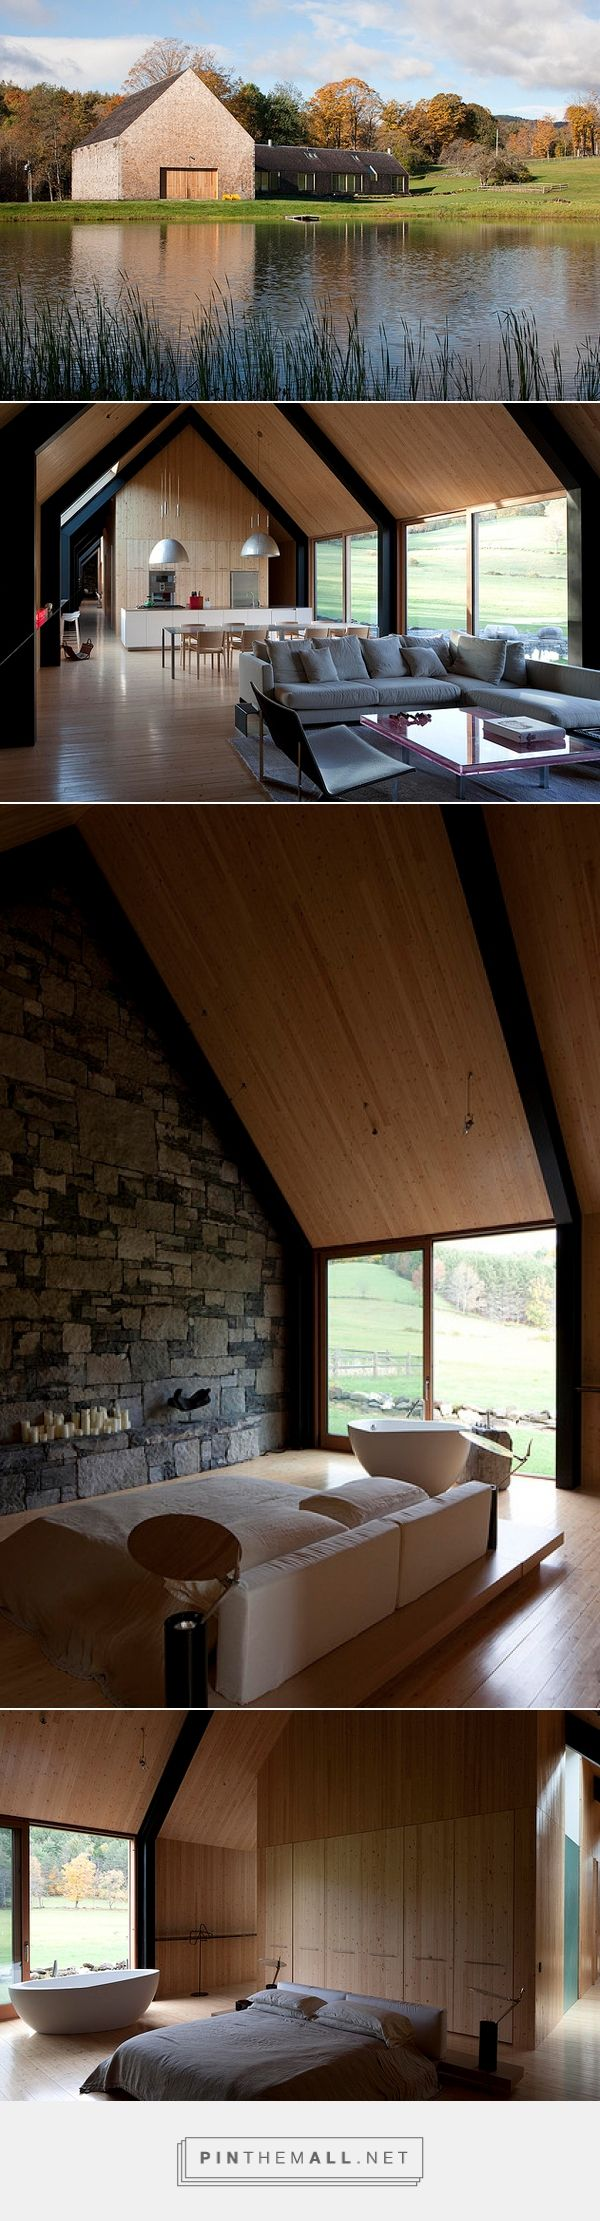 Expressive gable roof and ceiling form to pool (Woodstock House by Rick Joy)